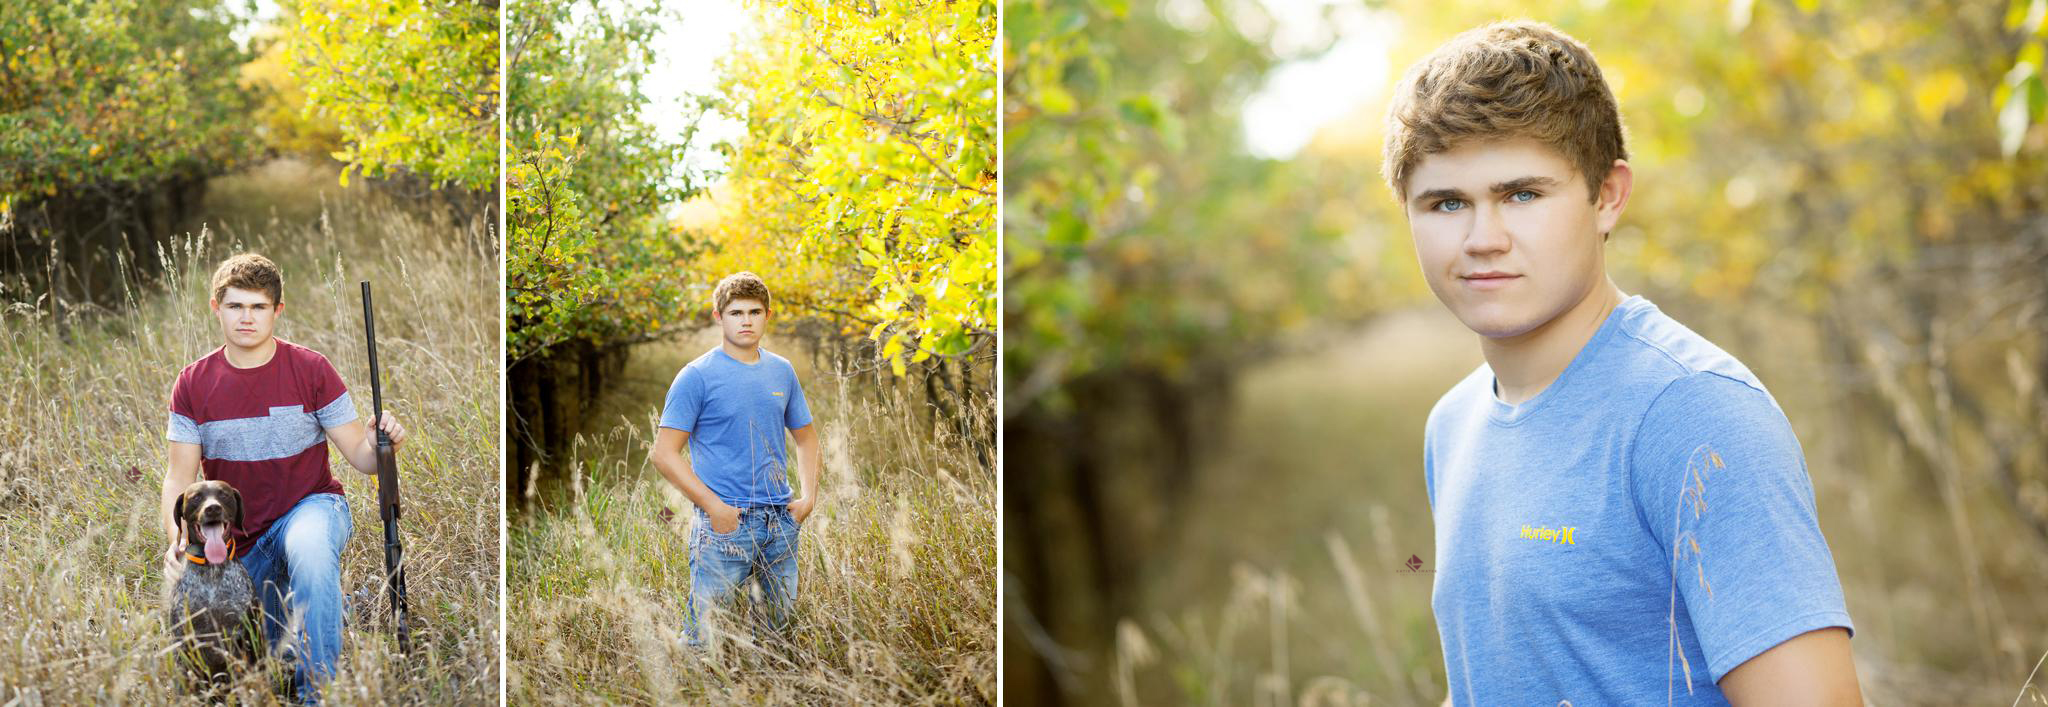 South Dakota Senior Pictures | Country Senior Pictures by Katie Swatek Photography | Guy Senior Pictures by Katie Swatek Photography